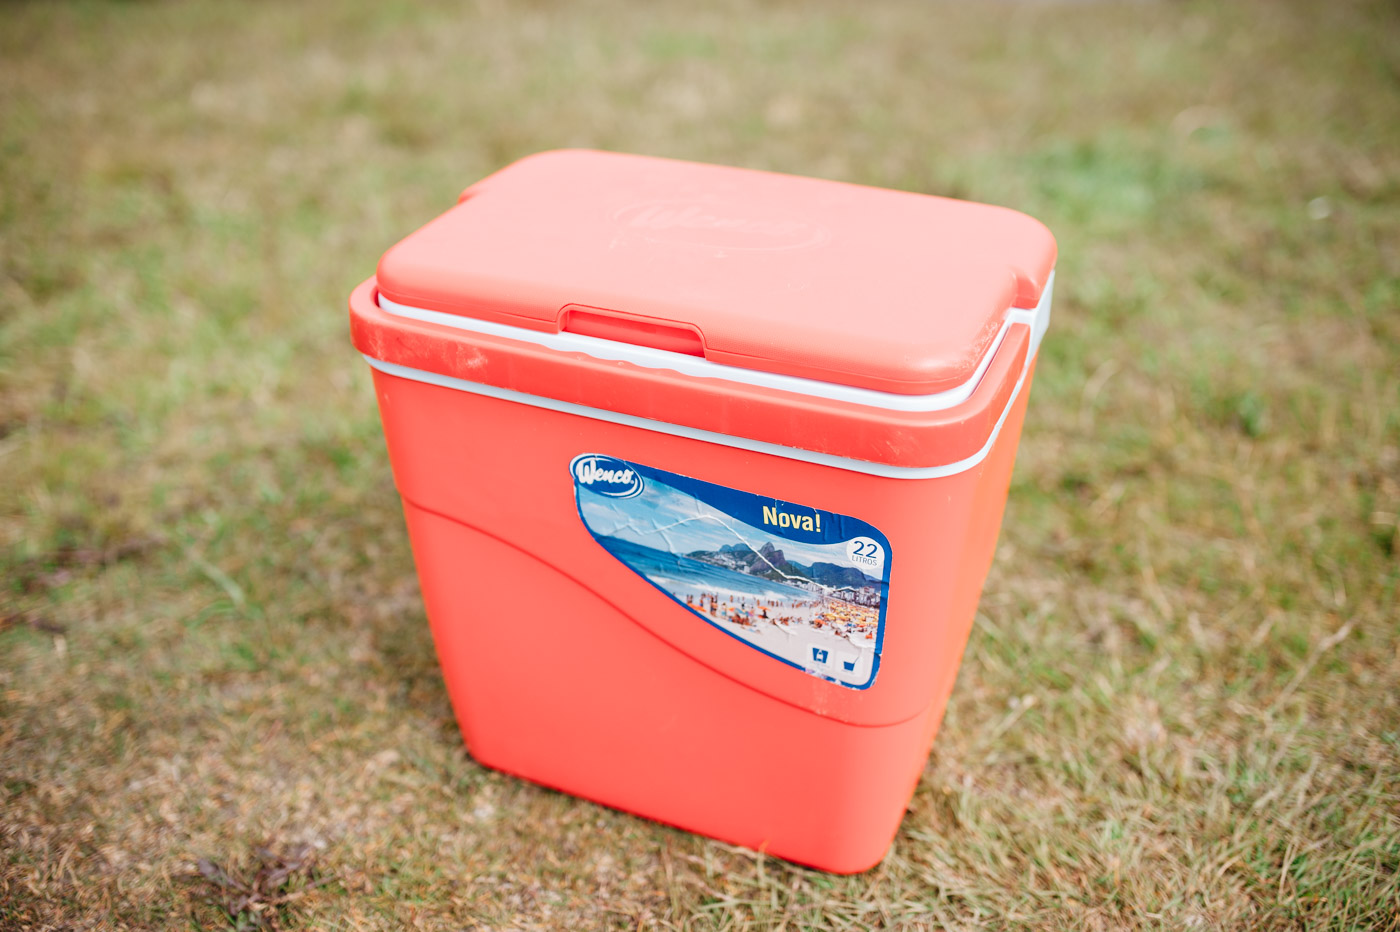 Wicked SouthAmerica Campervan Review-camping cooler